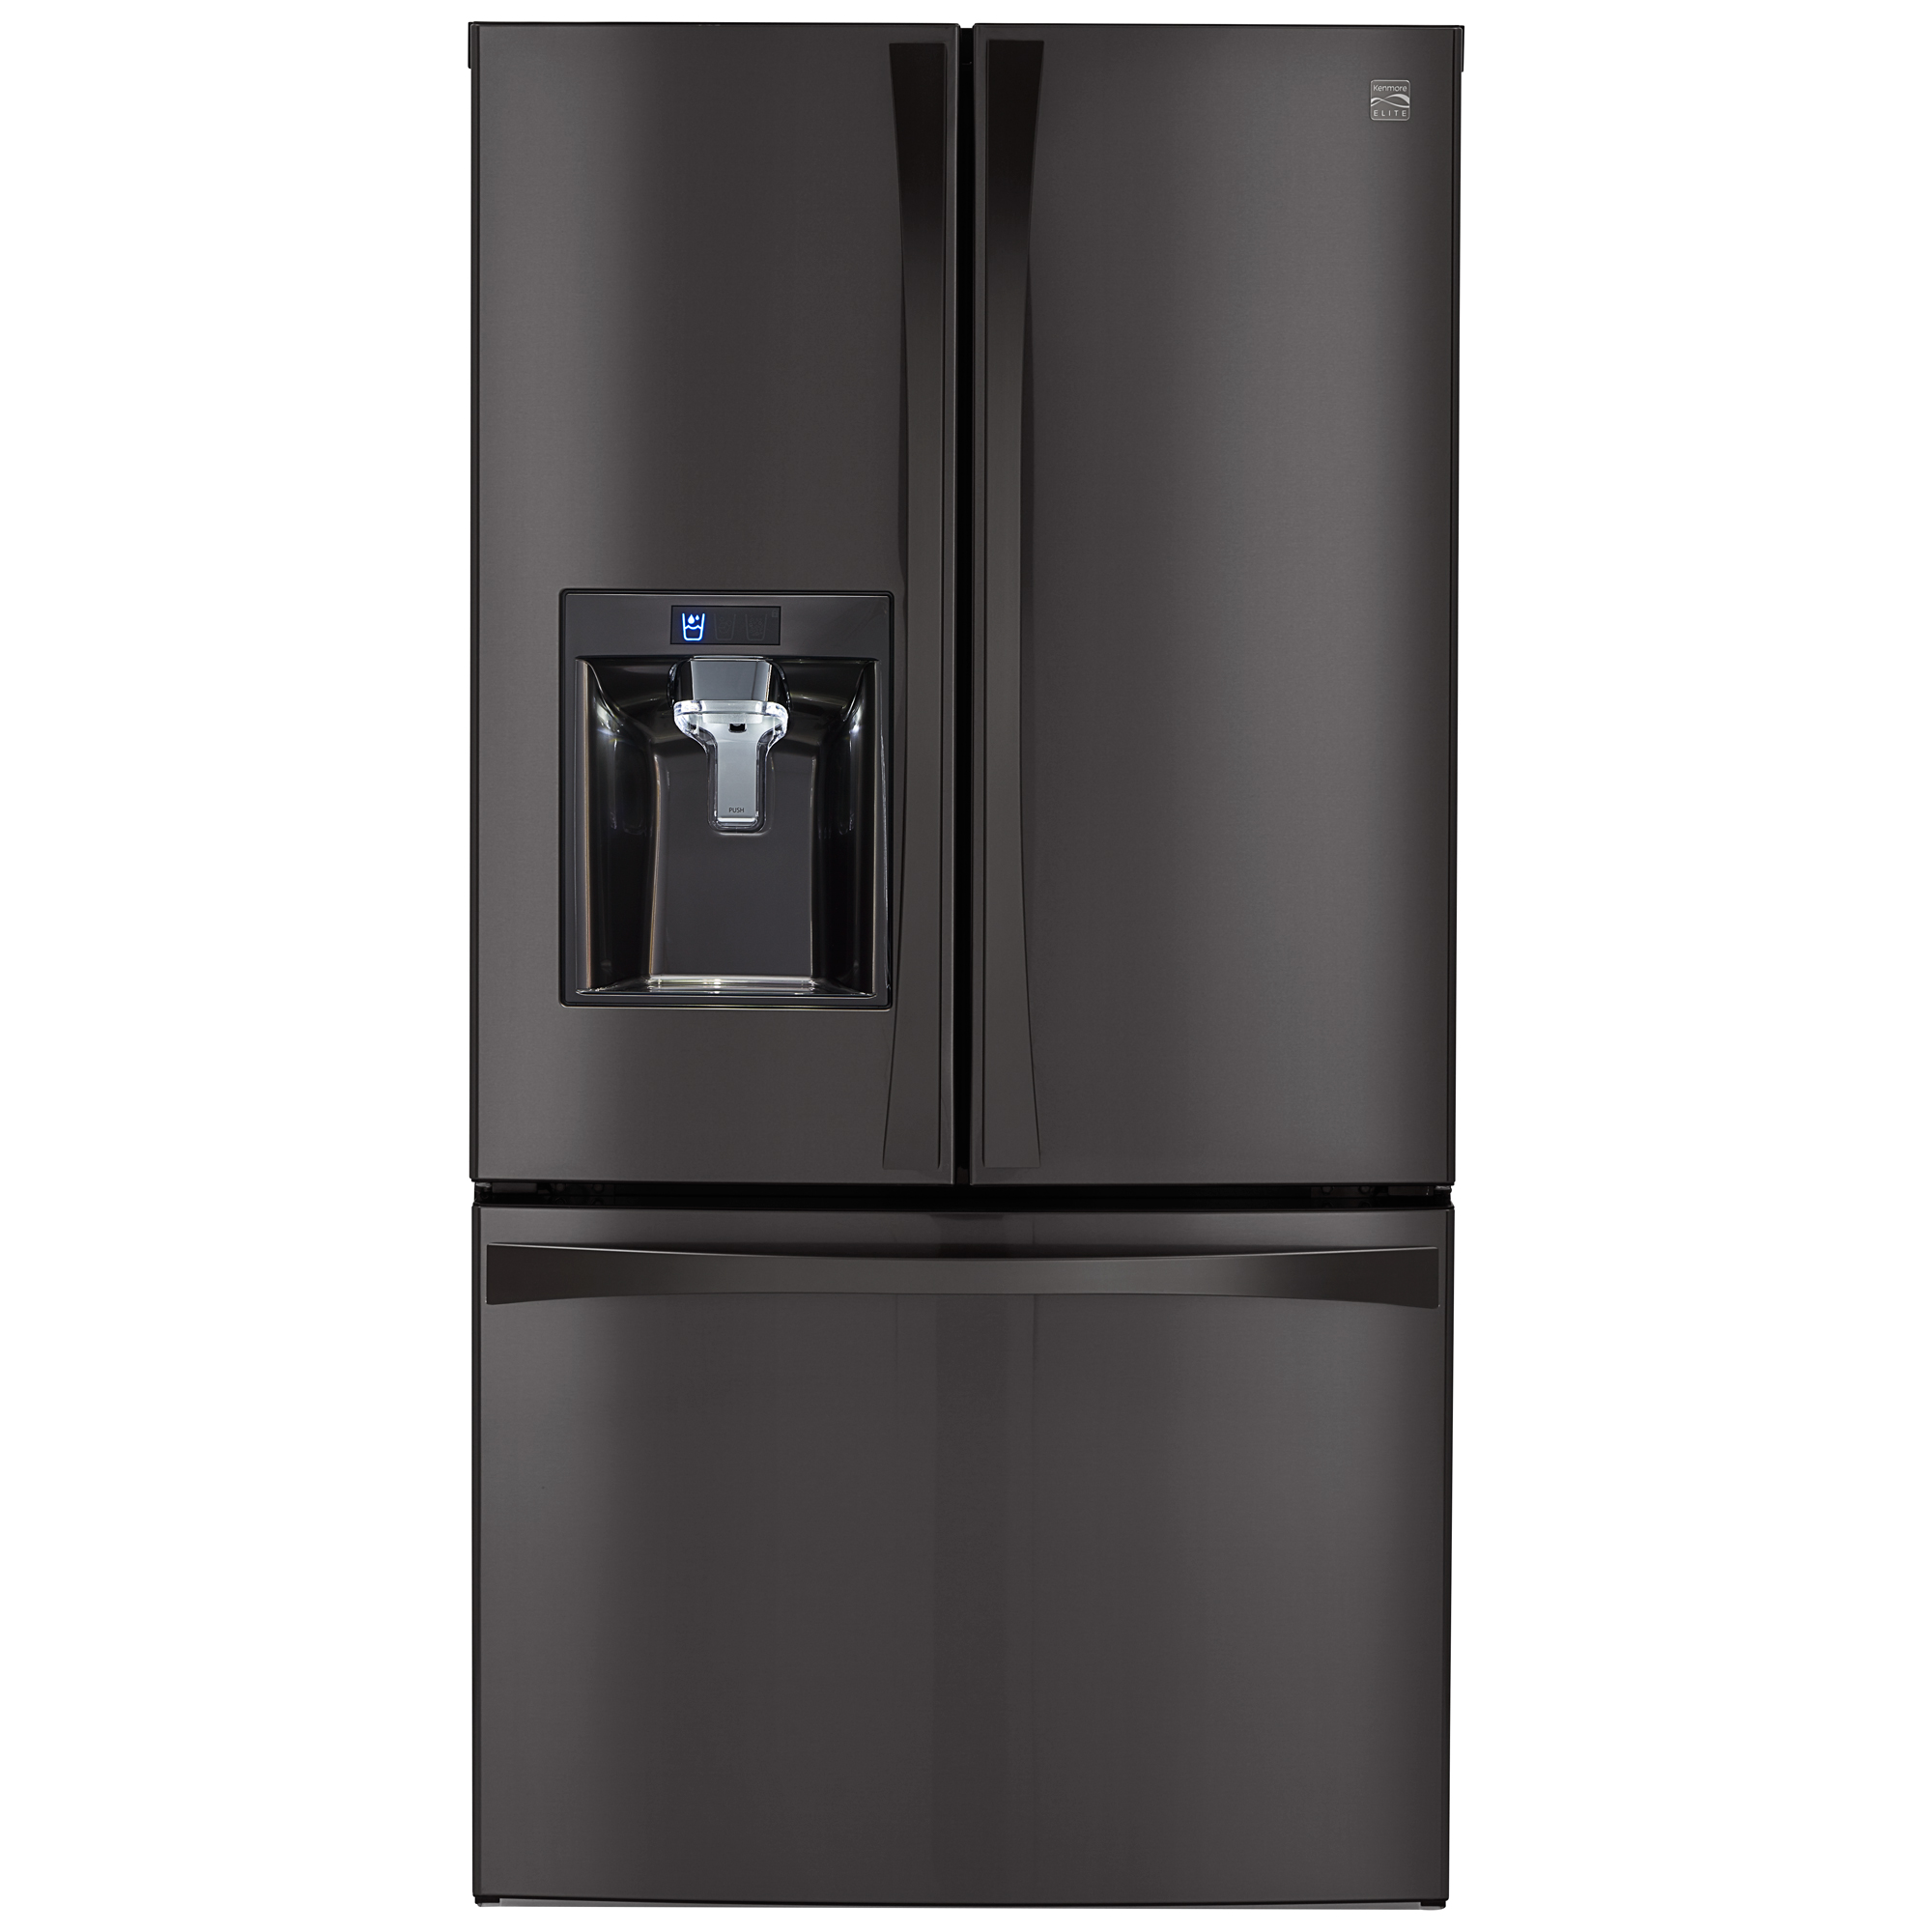 New Refrigerator Price Kenmore Elite 73157 28 7 Cu Ft French Door Bottom Freezer